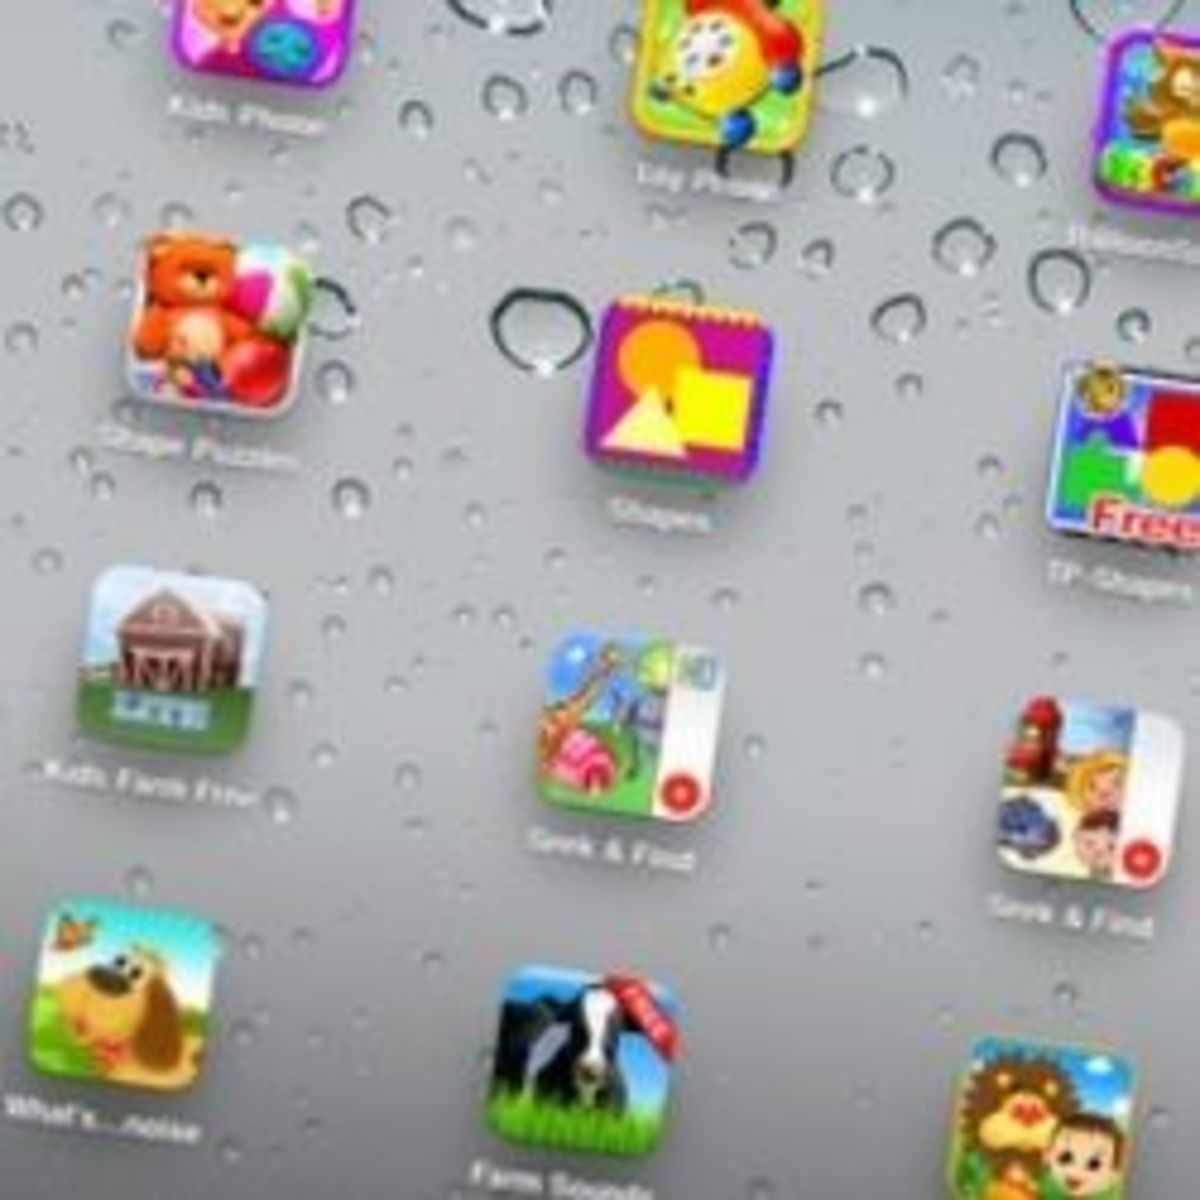 Ten More Free Toddler iPad Apps